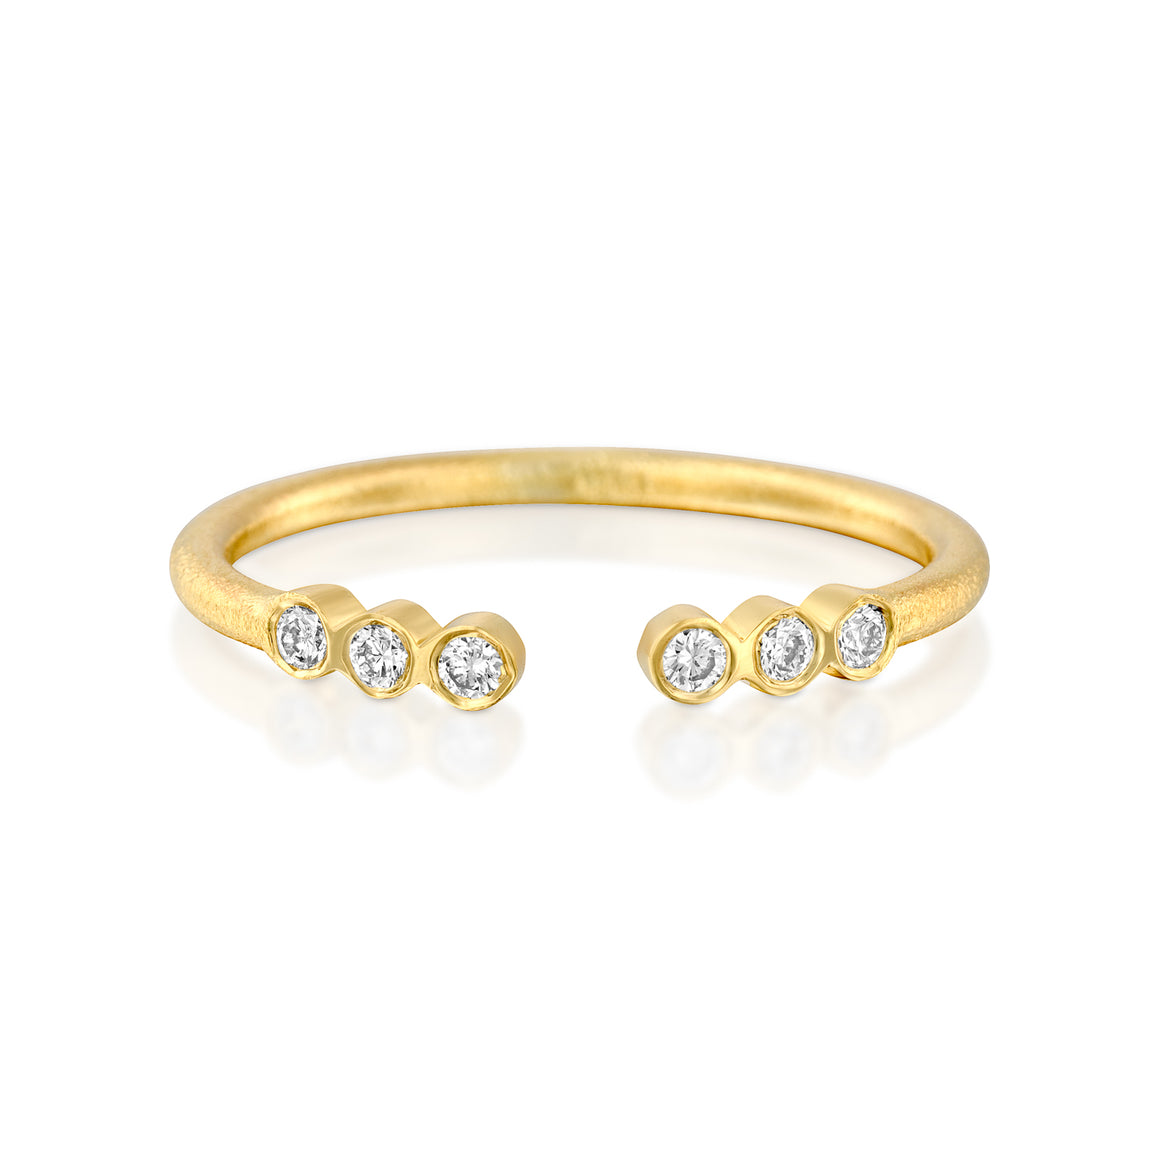 14ct Gold and Diamond Marika Ring. - Gemma Stone  ABN:51 621 127 866